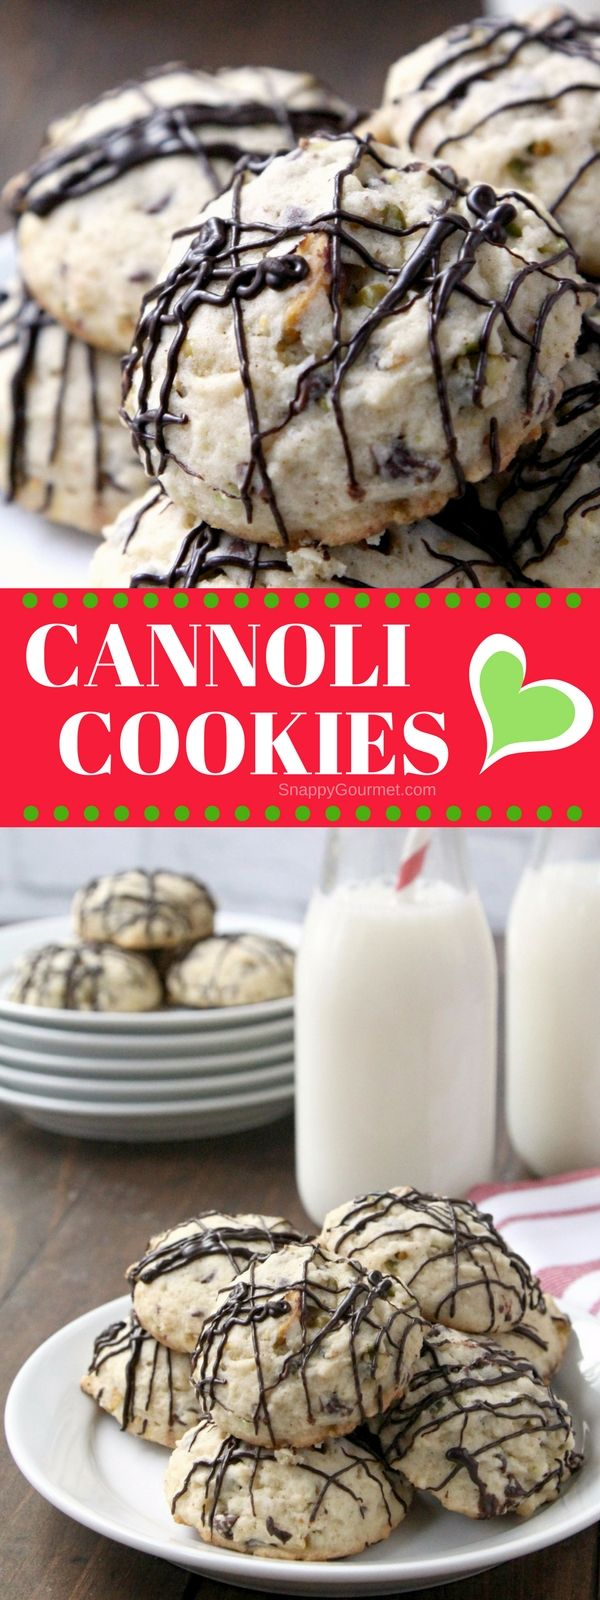 Connoli Cookies | Posted By: DebbieNet.com